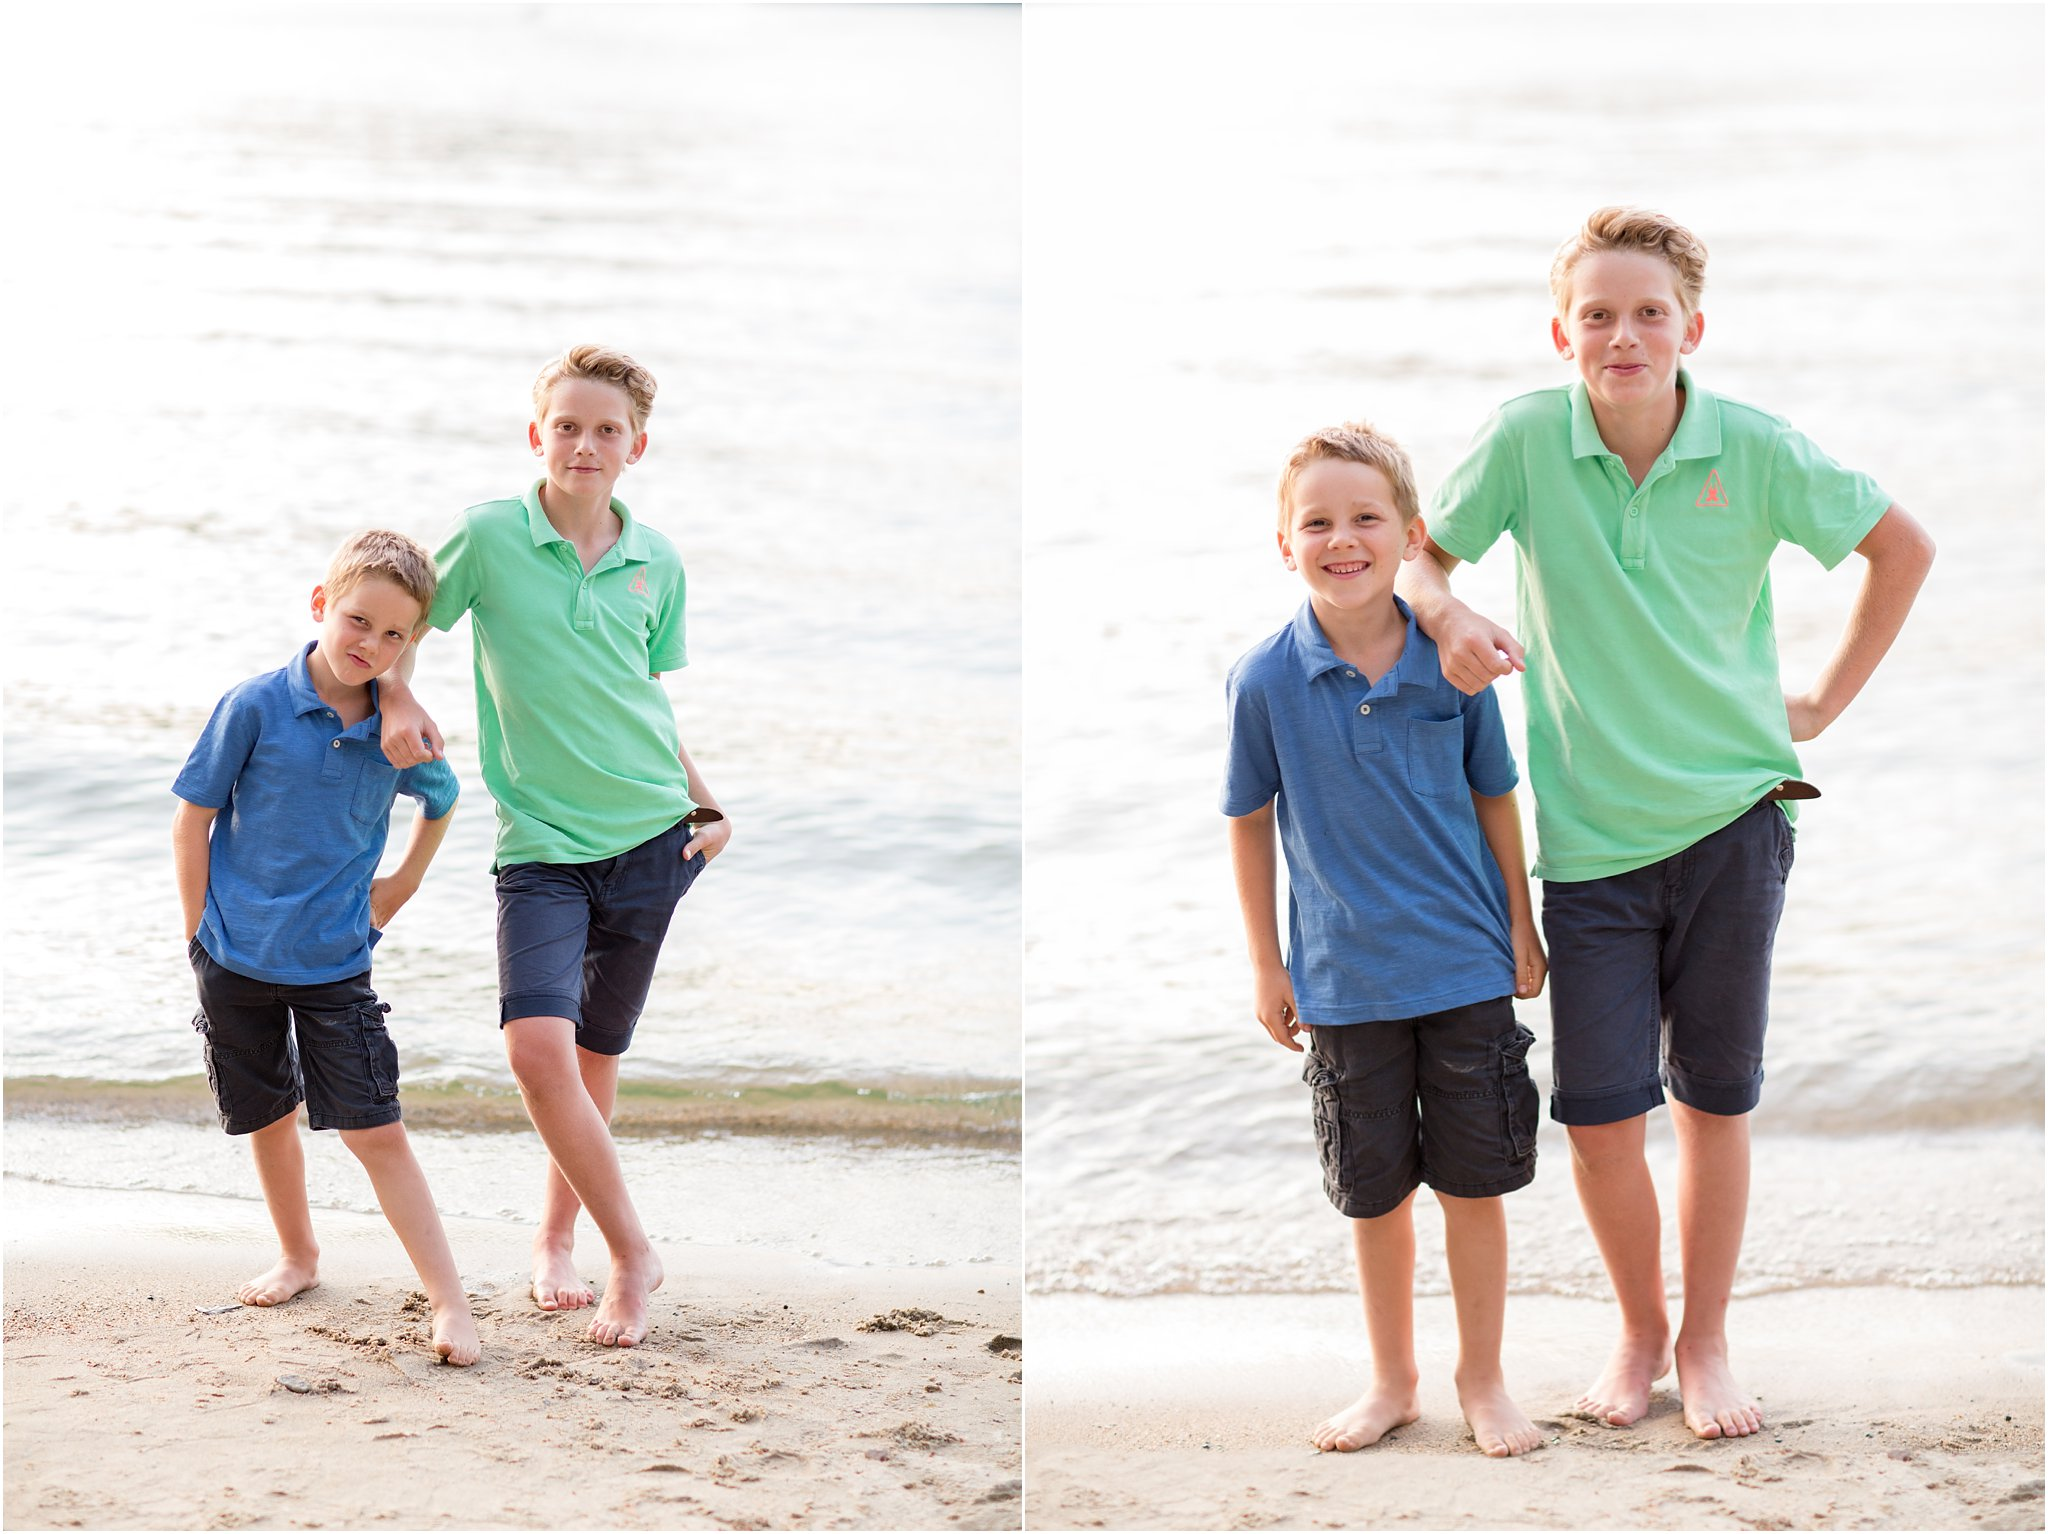 Boys on a Beach in New Hampshire